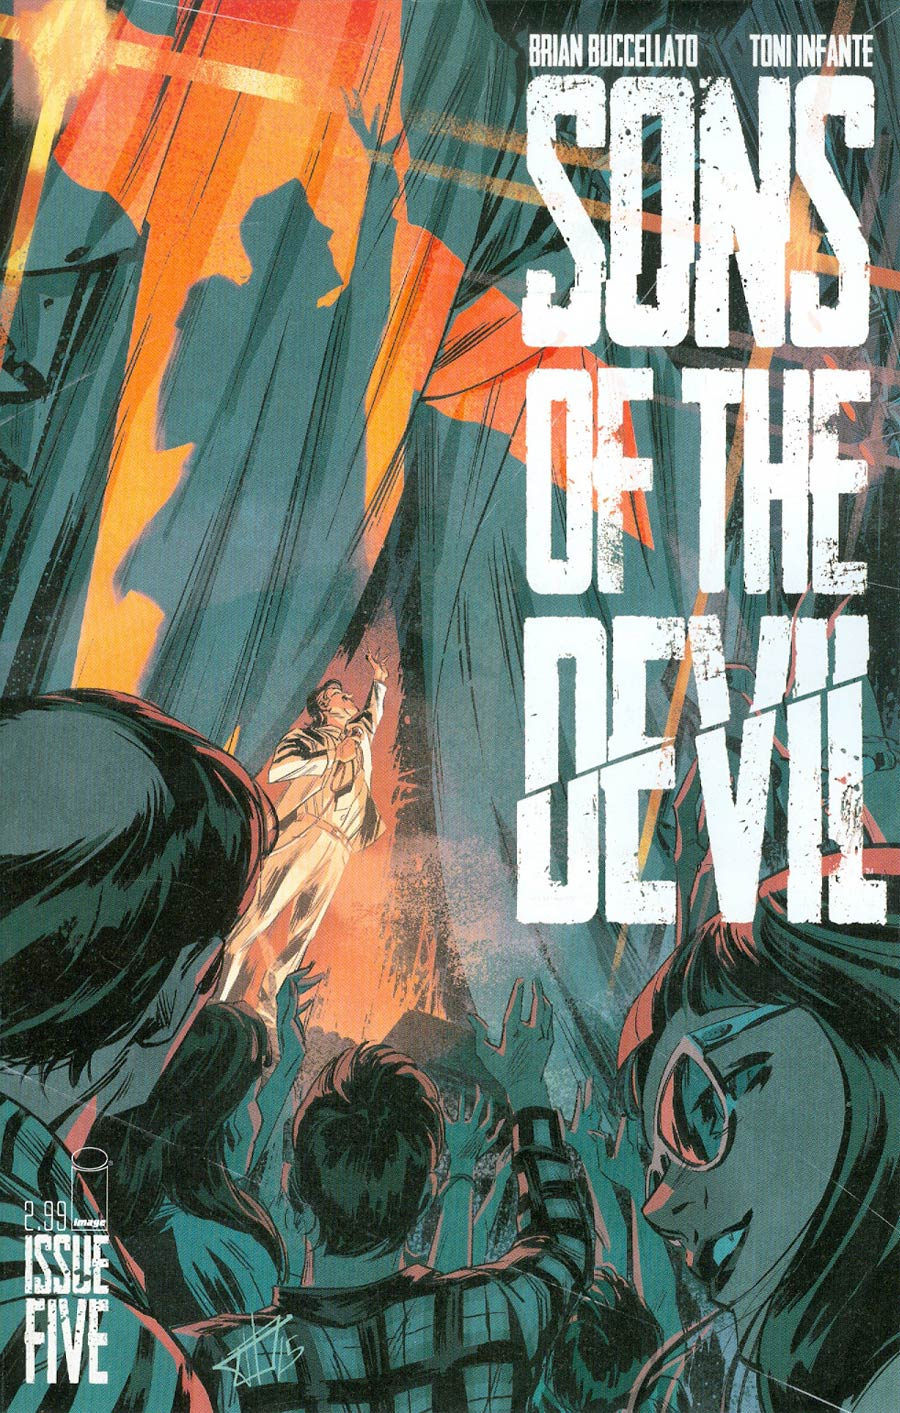 Sons Of The Devil #5 Cover A Toni Infante